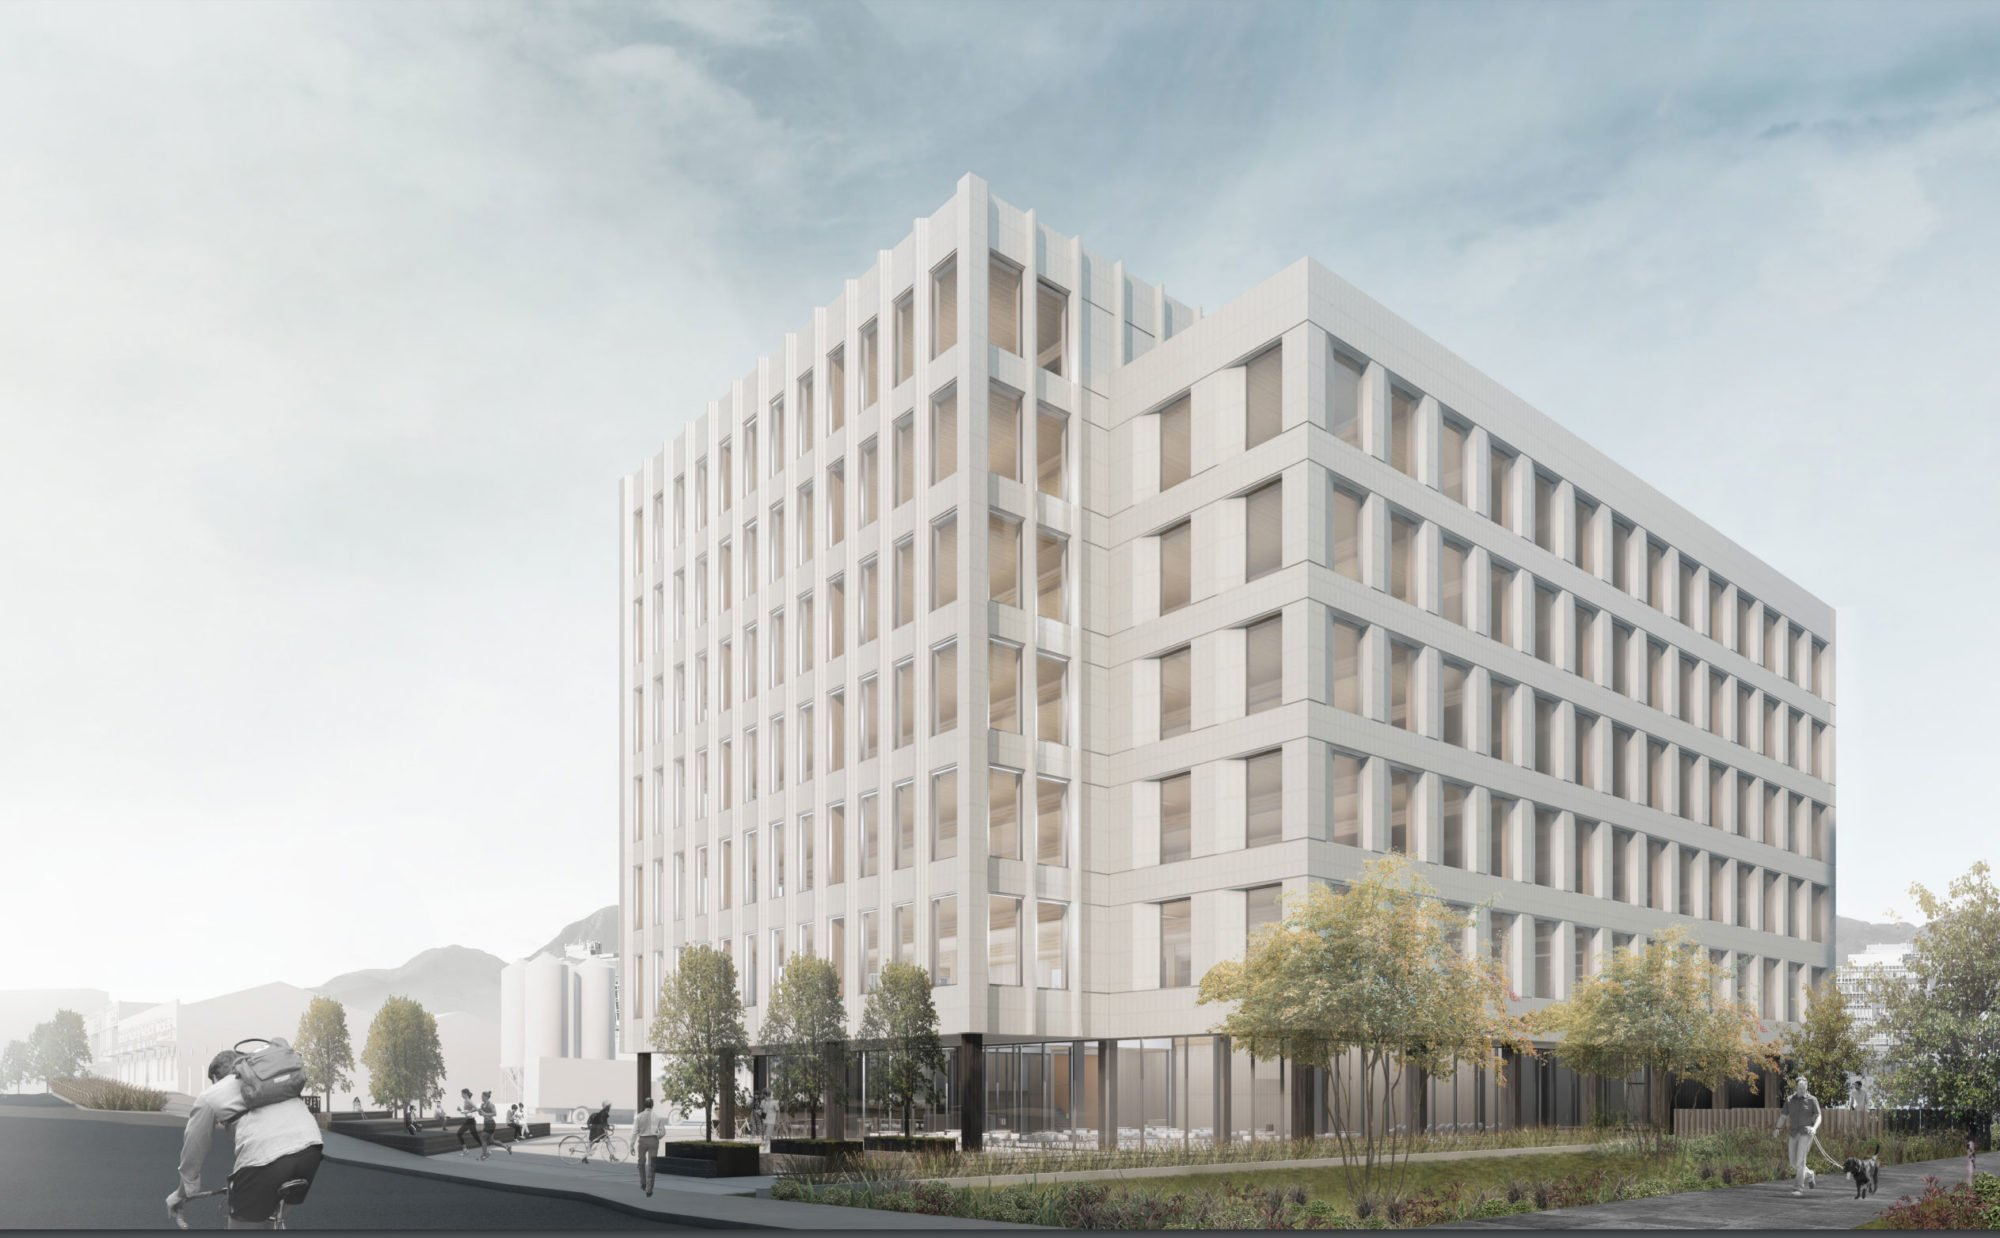 Terracotta-clad office building planned next to Red Truck Brewery